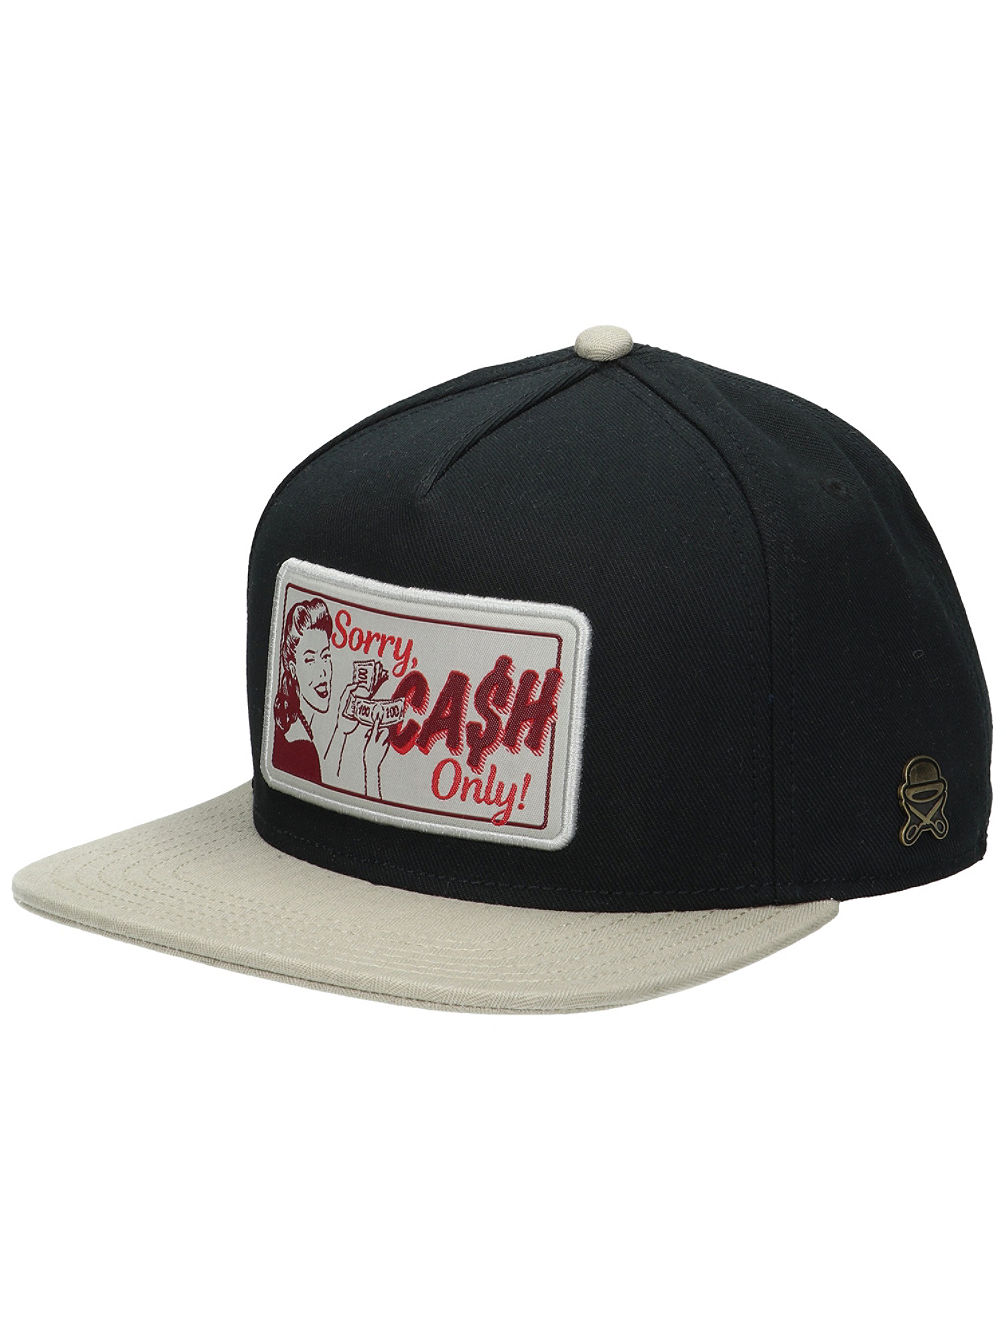 C&S CL Cash Only Cap